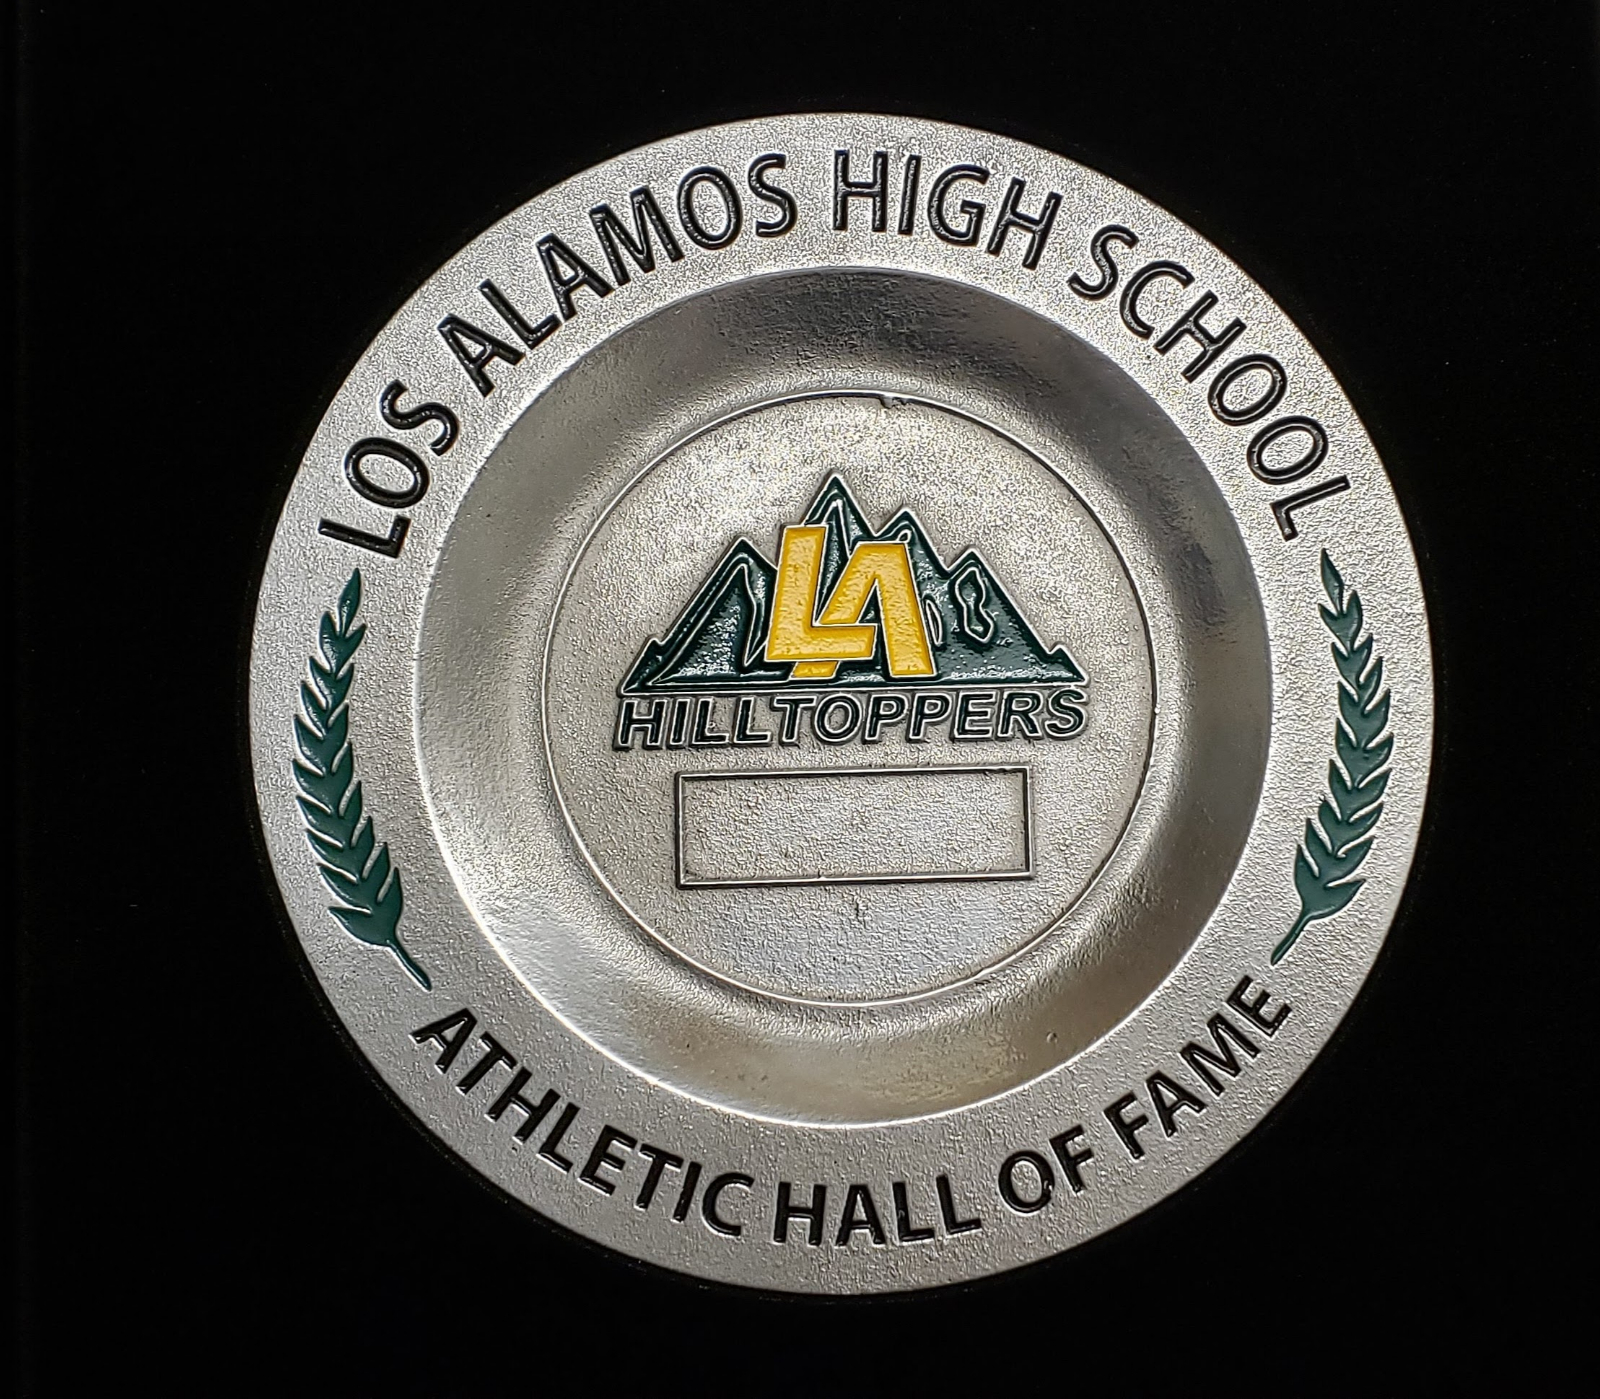 LAPS Athletic Hall of Fame seeks nominations for the Class of 2019